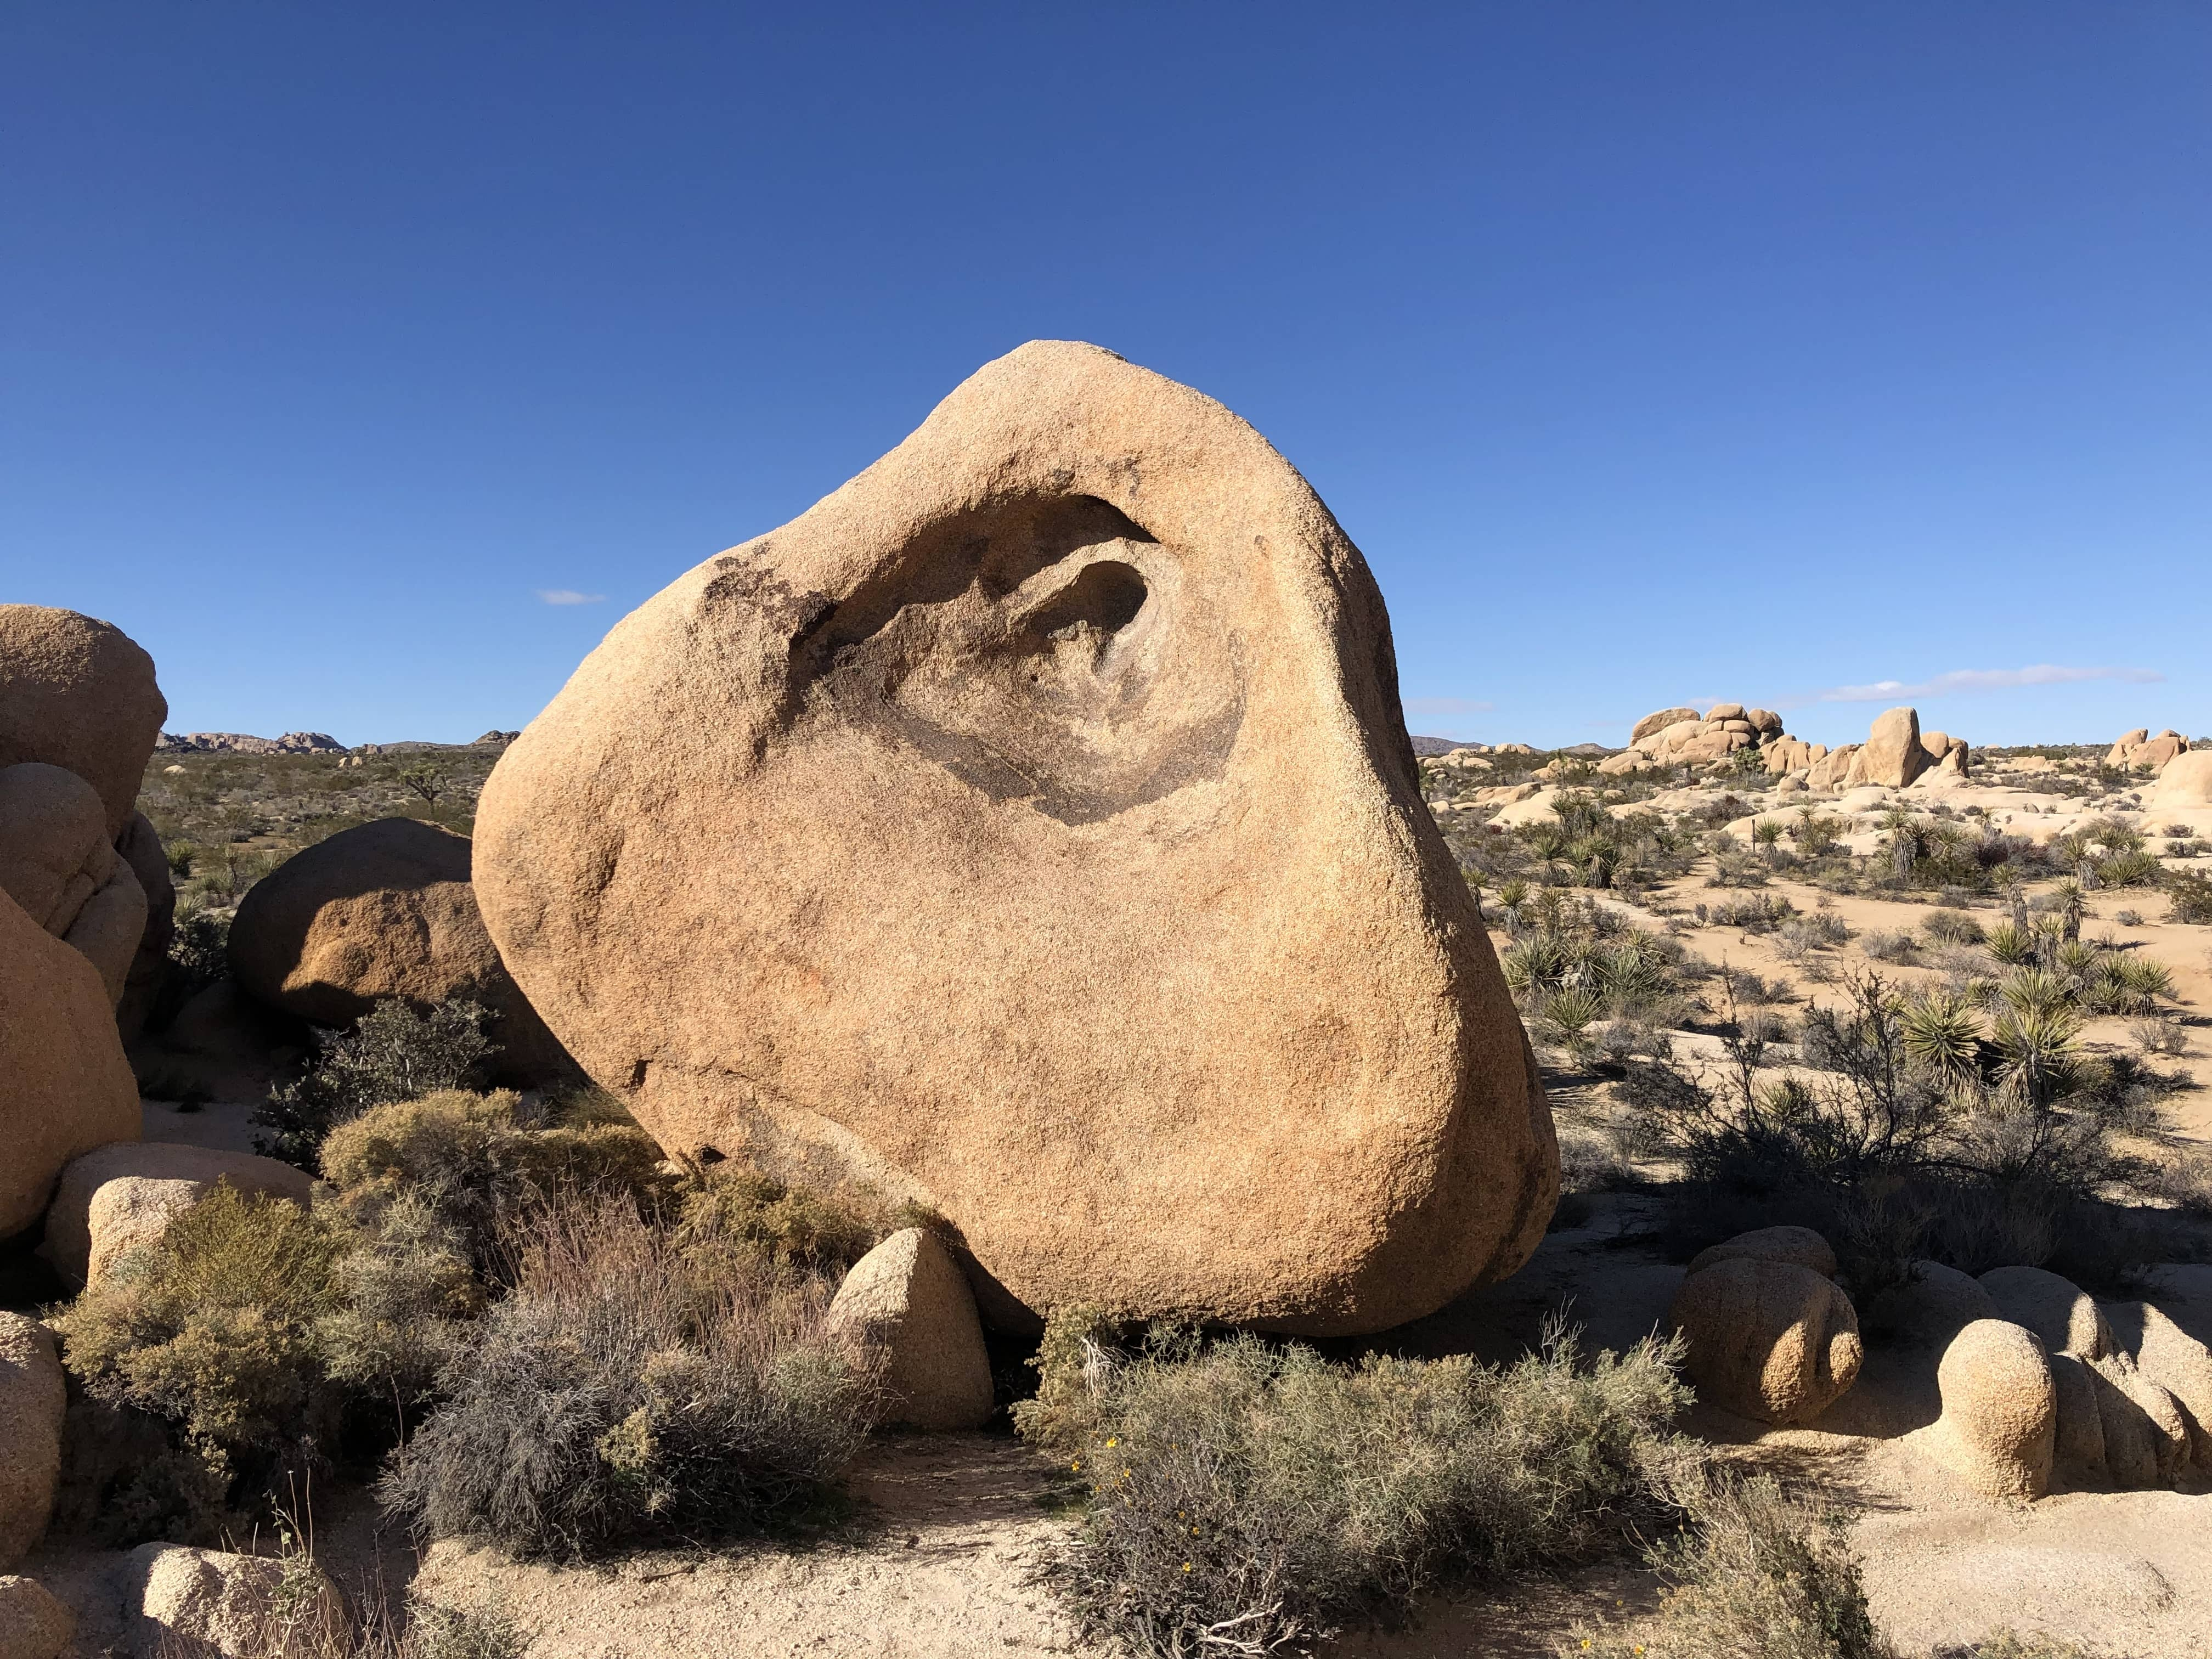 A weird shaped rock in Joshua Tree National Park